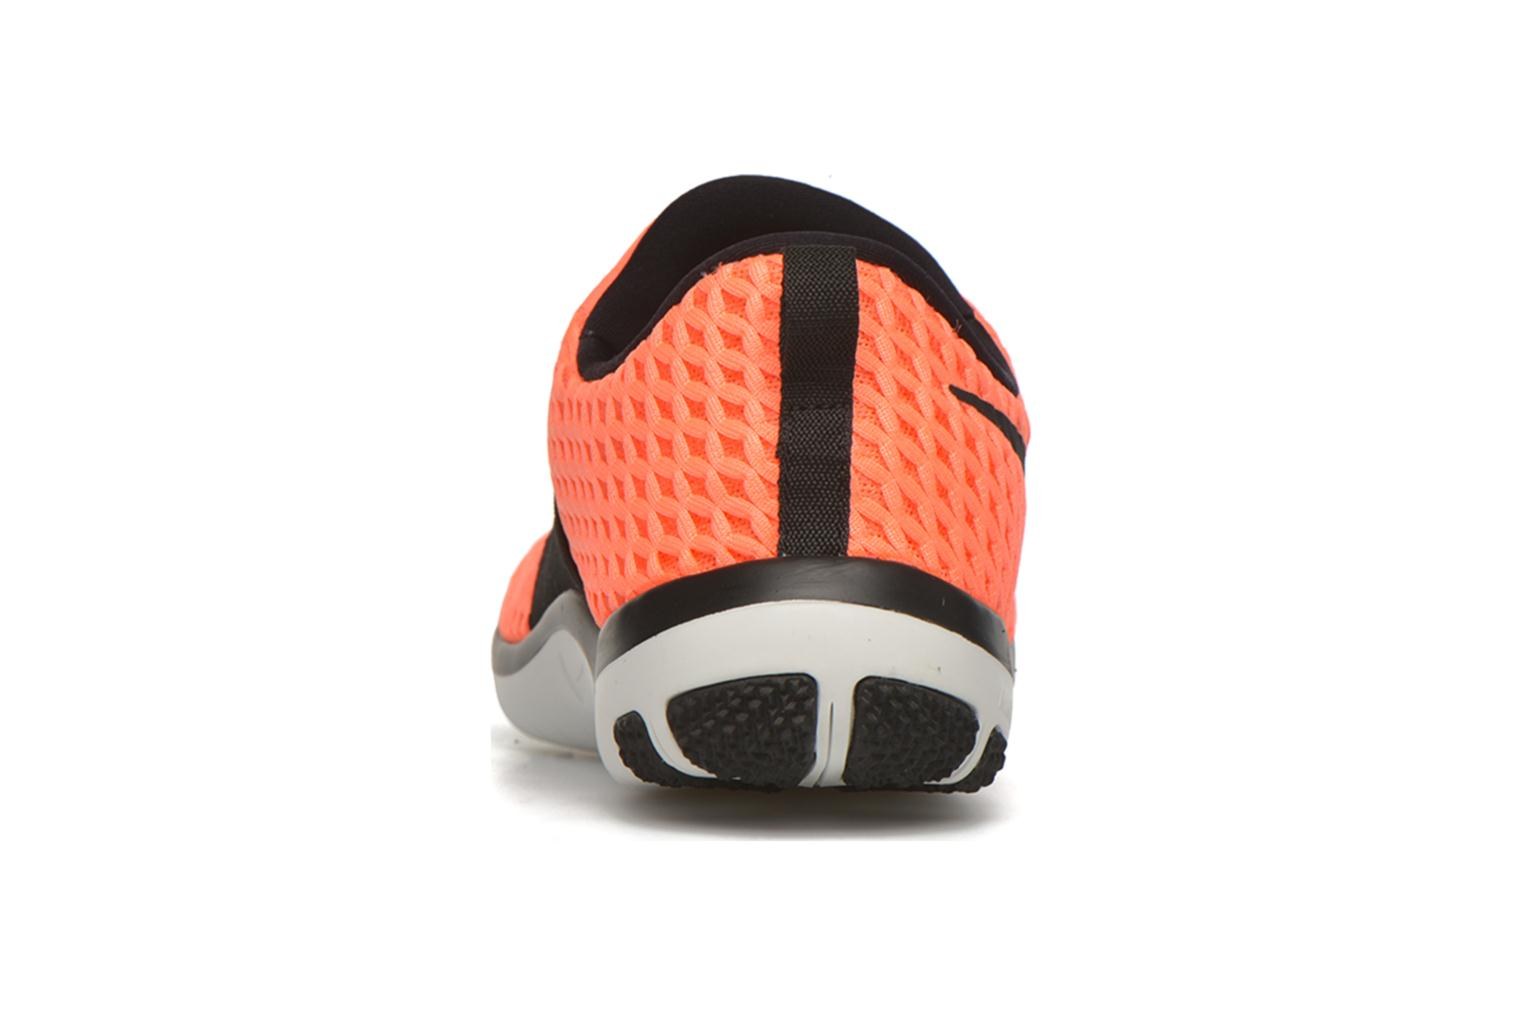 Wmns Nike Free Connect Bright Mango/Metallic Silver-Black